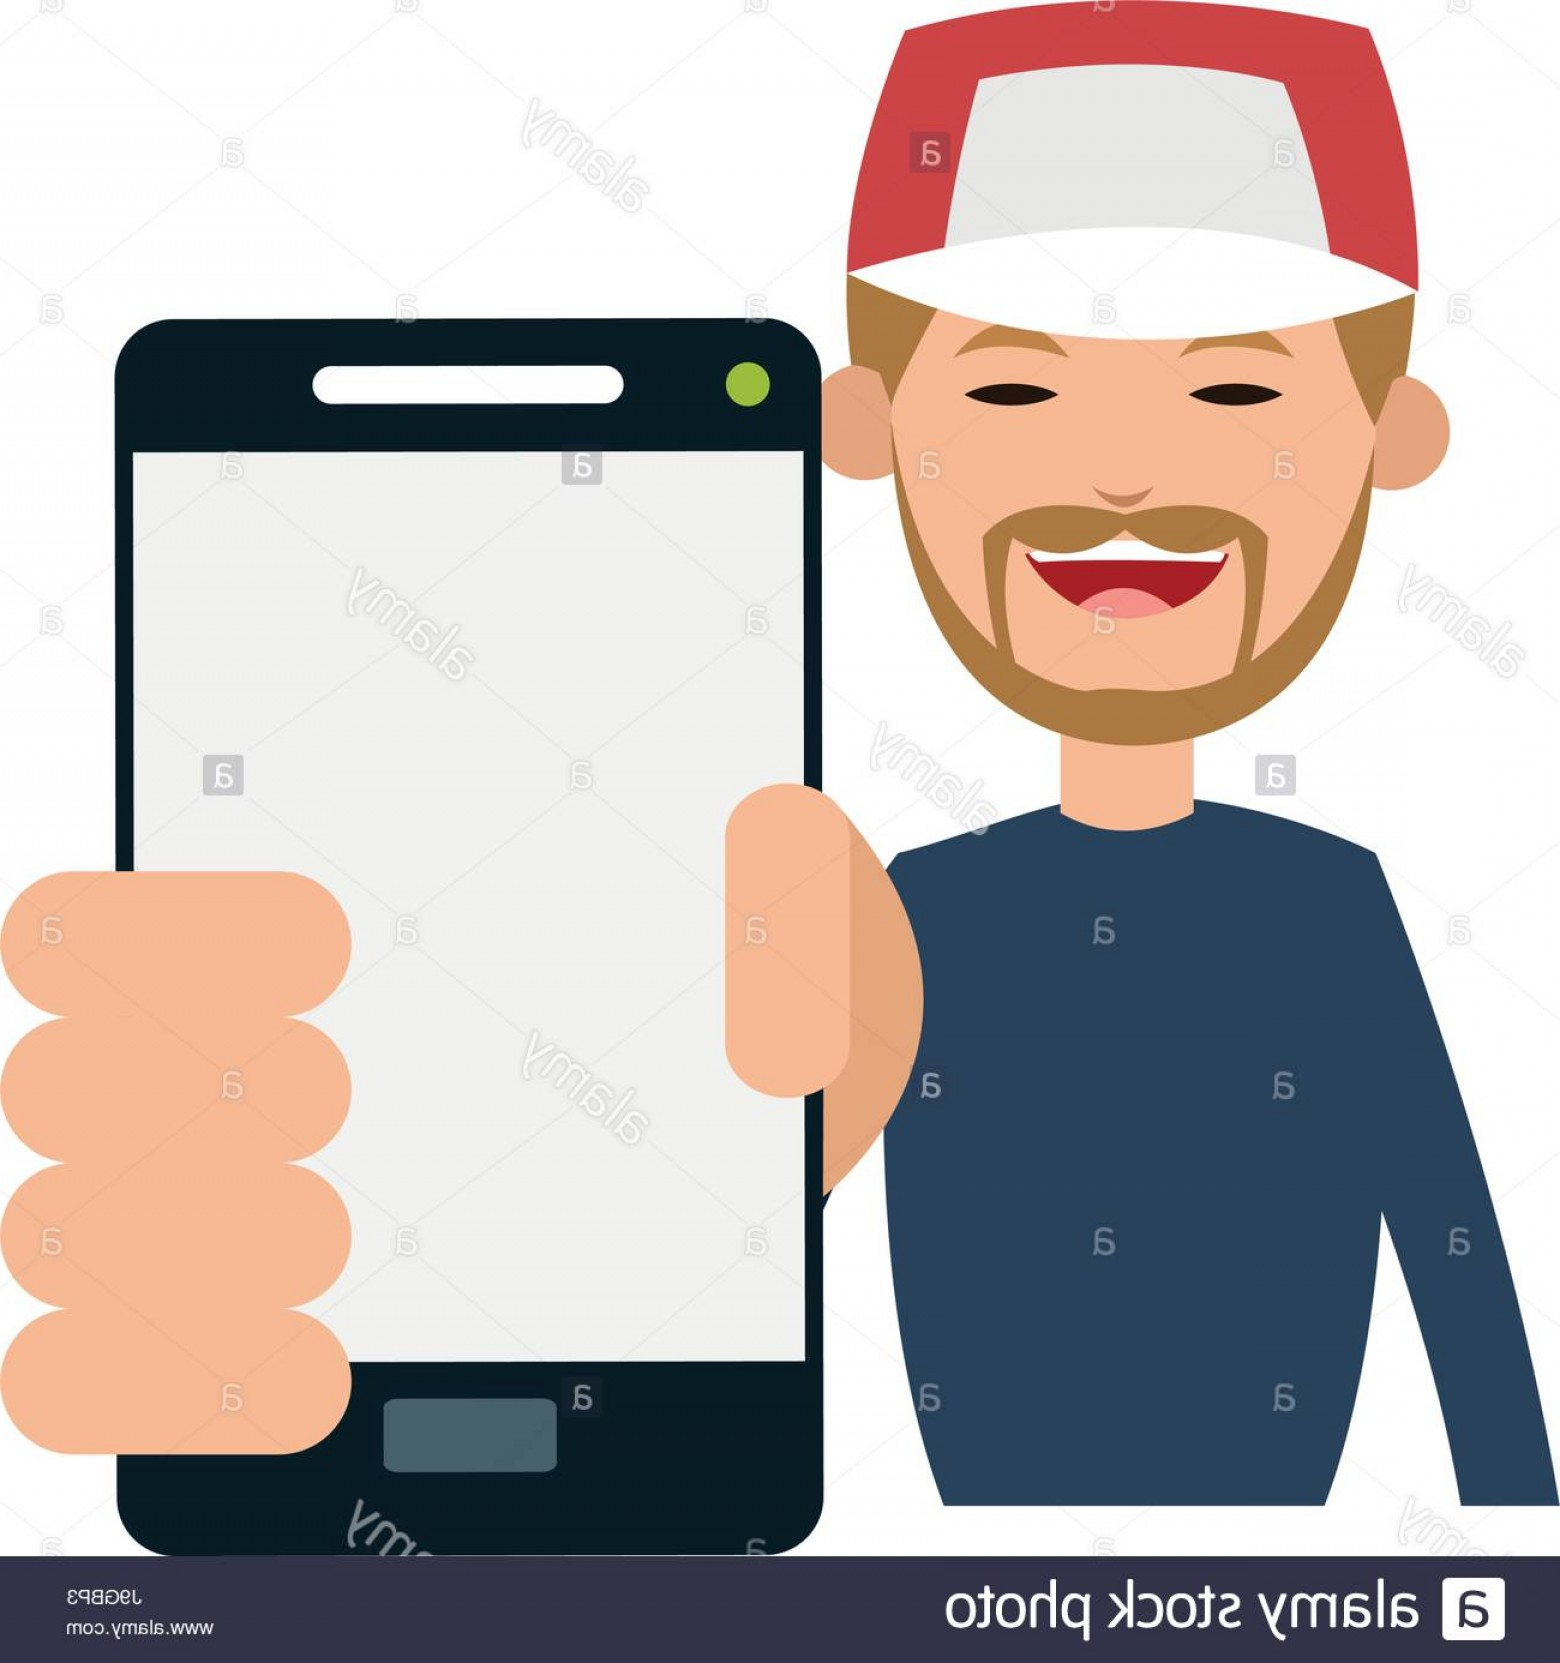 Vector Person Holding: Stock Photo Person Holding Smartphone Icon Image